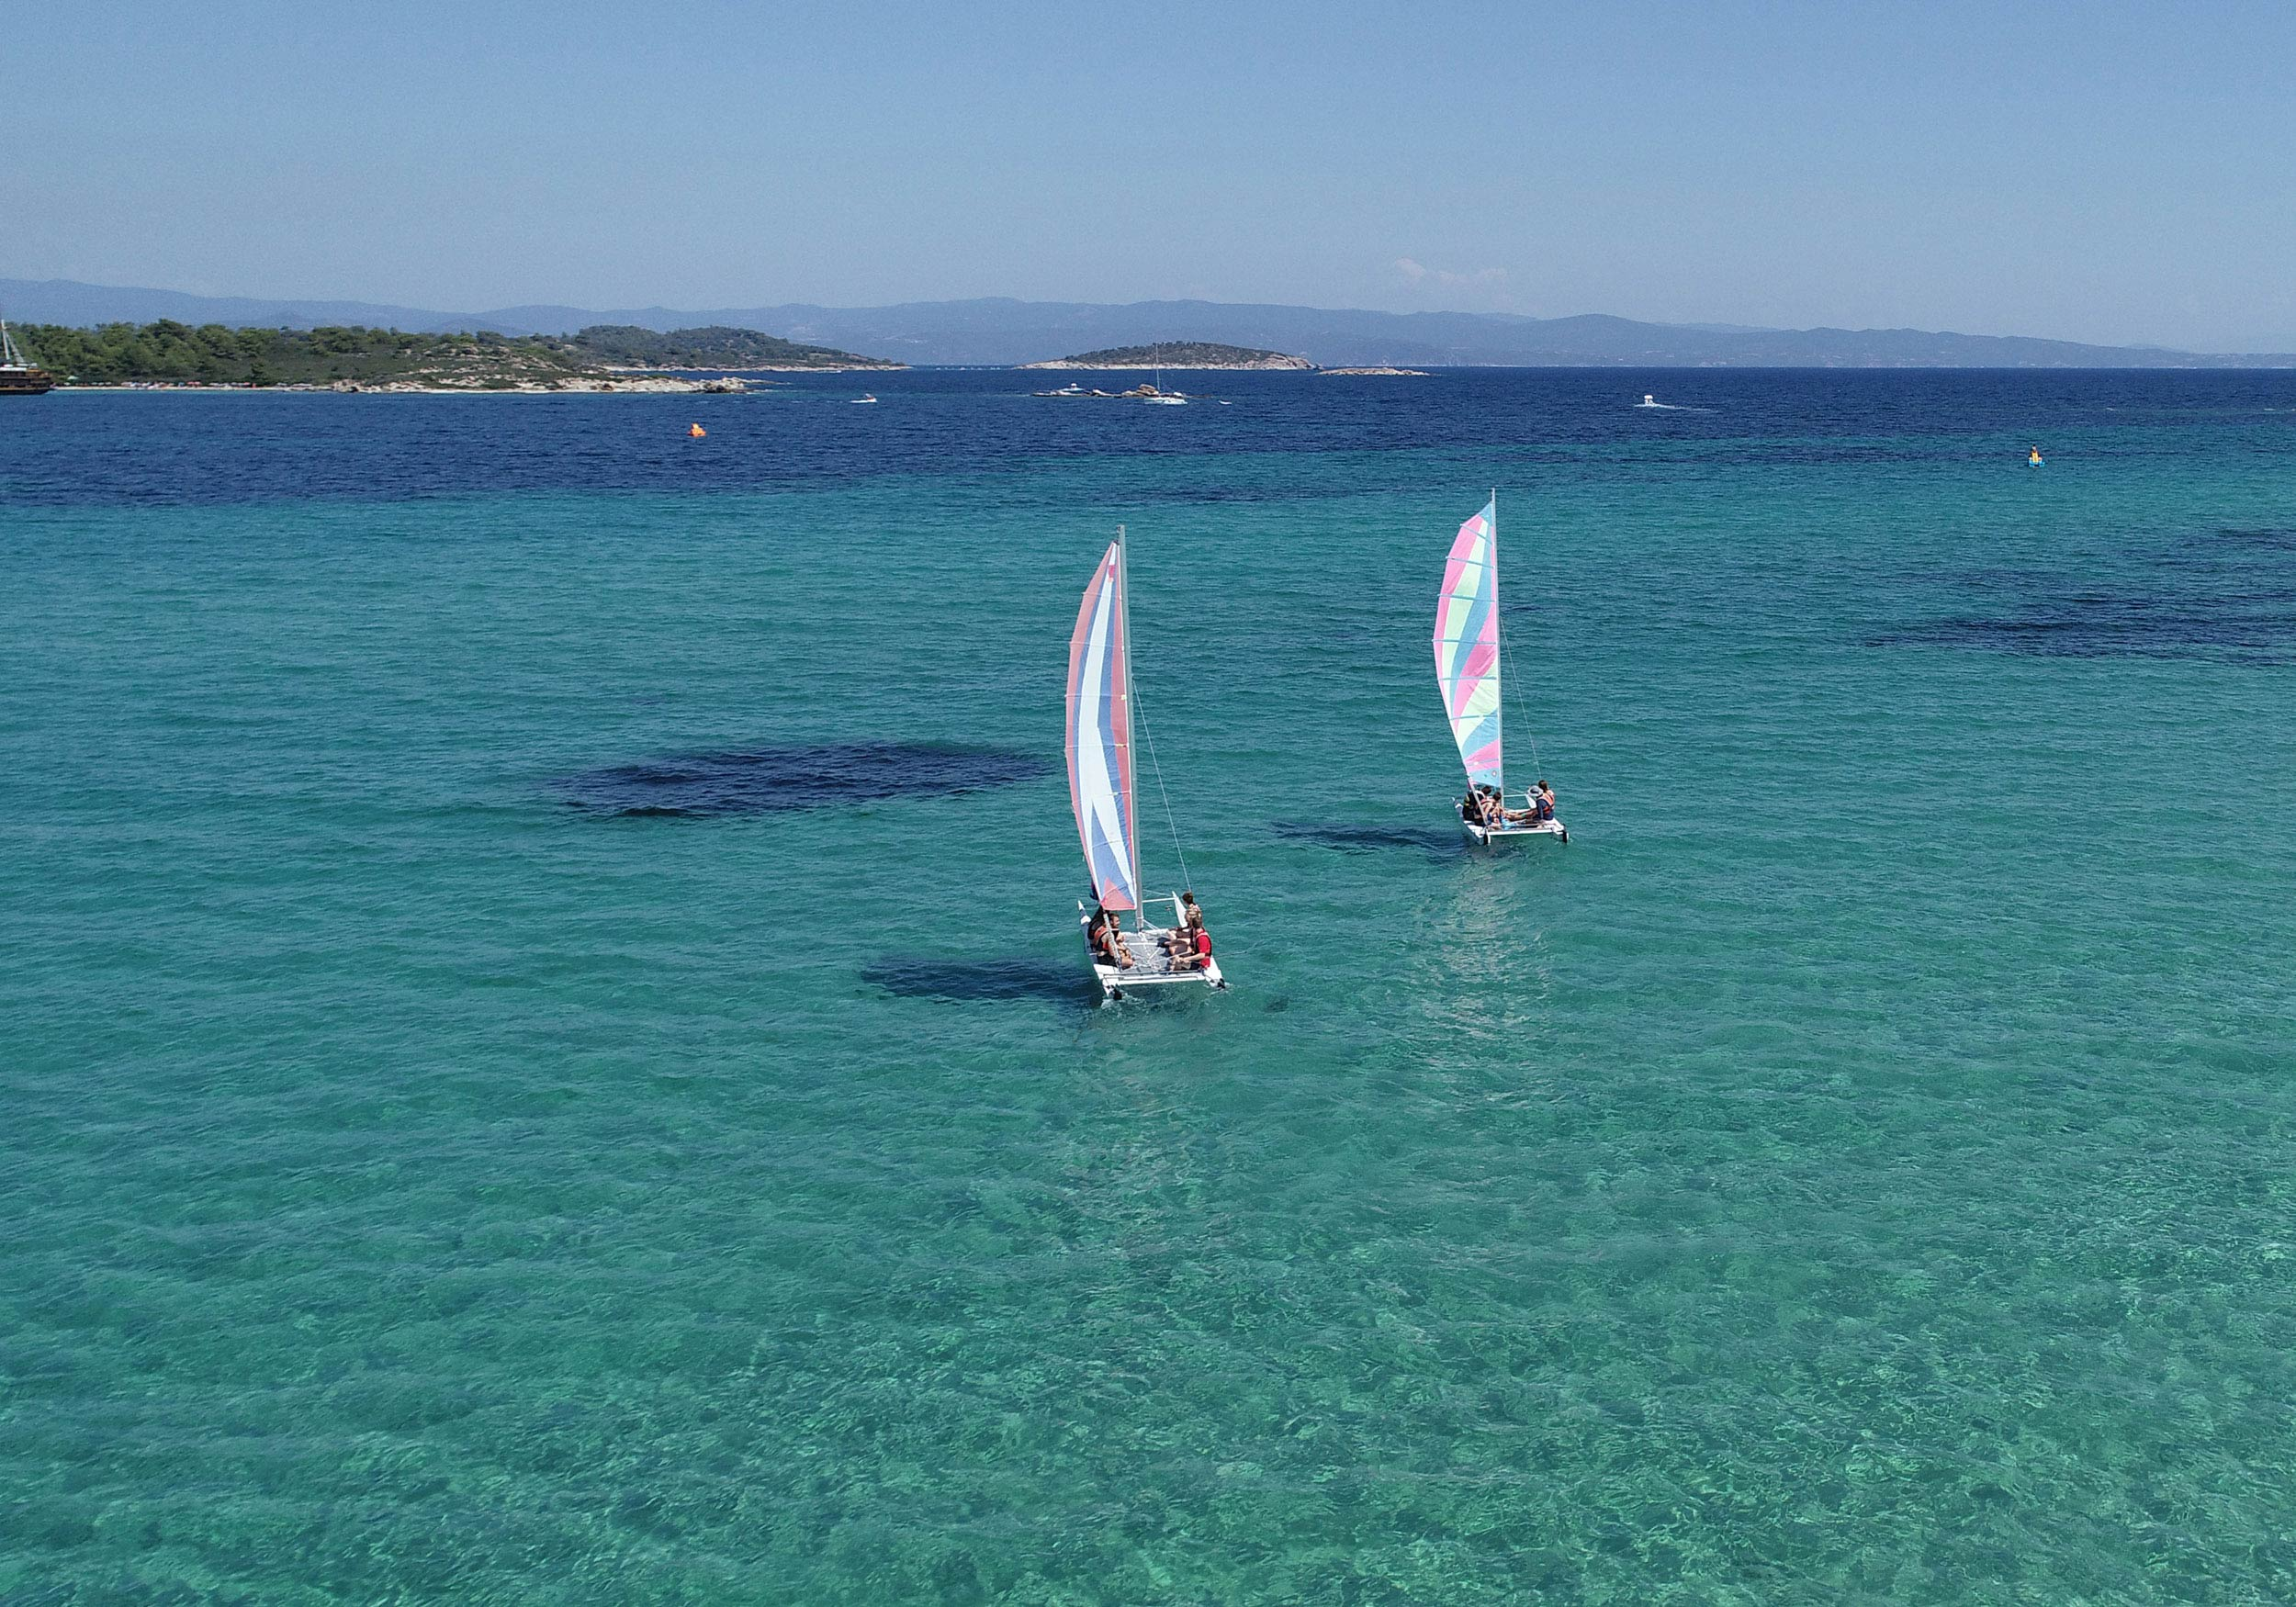 Two catamarans sailing in the blue sea